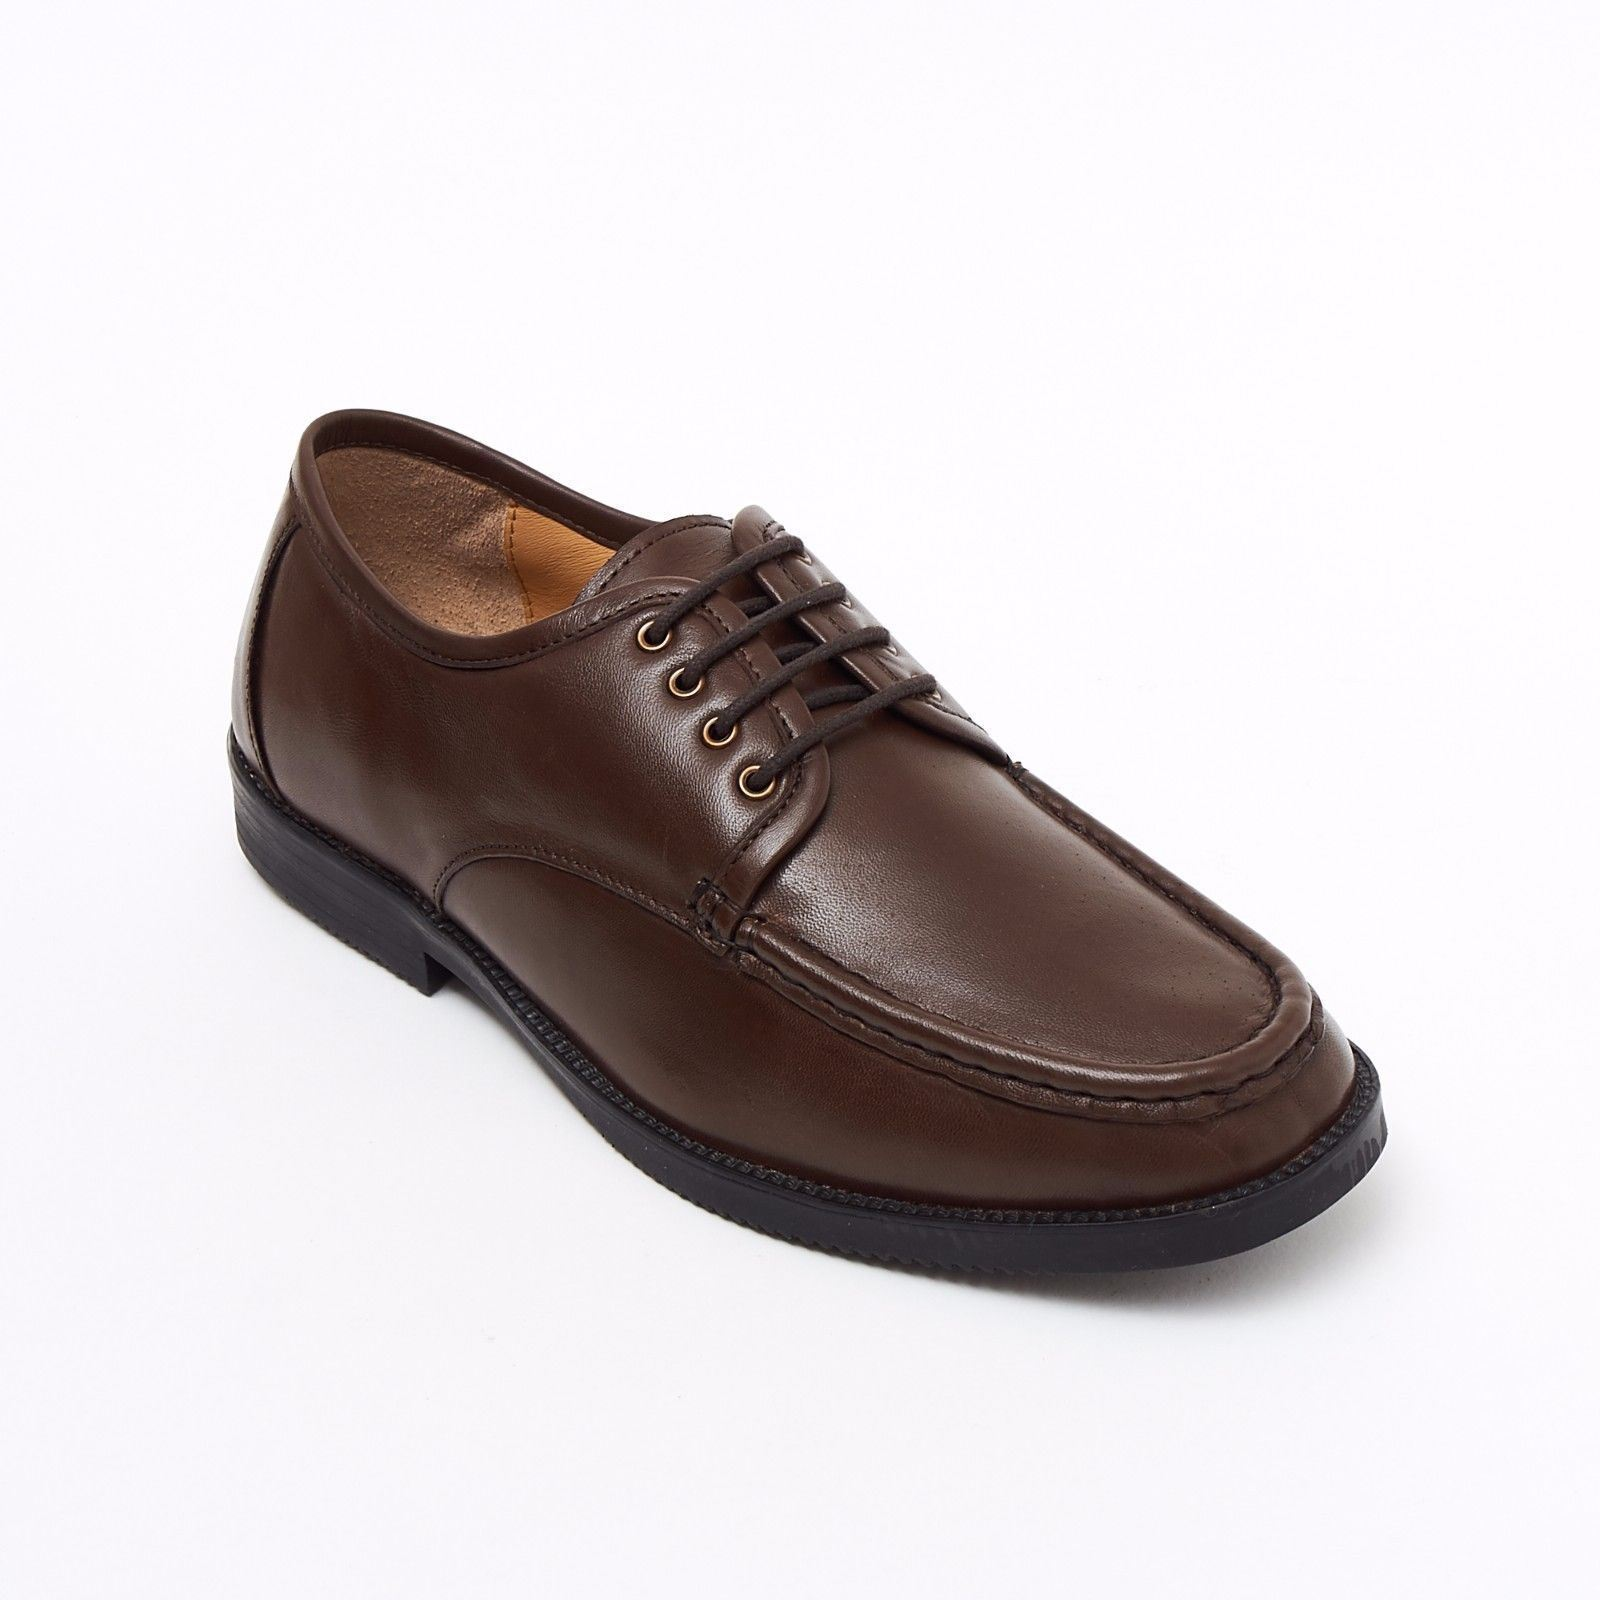 Lucini Formal Men Brown Leather 4 Eyelet Lace Up Comfort Shoes Wedding Office